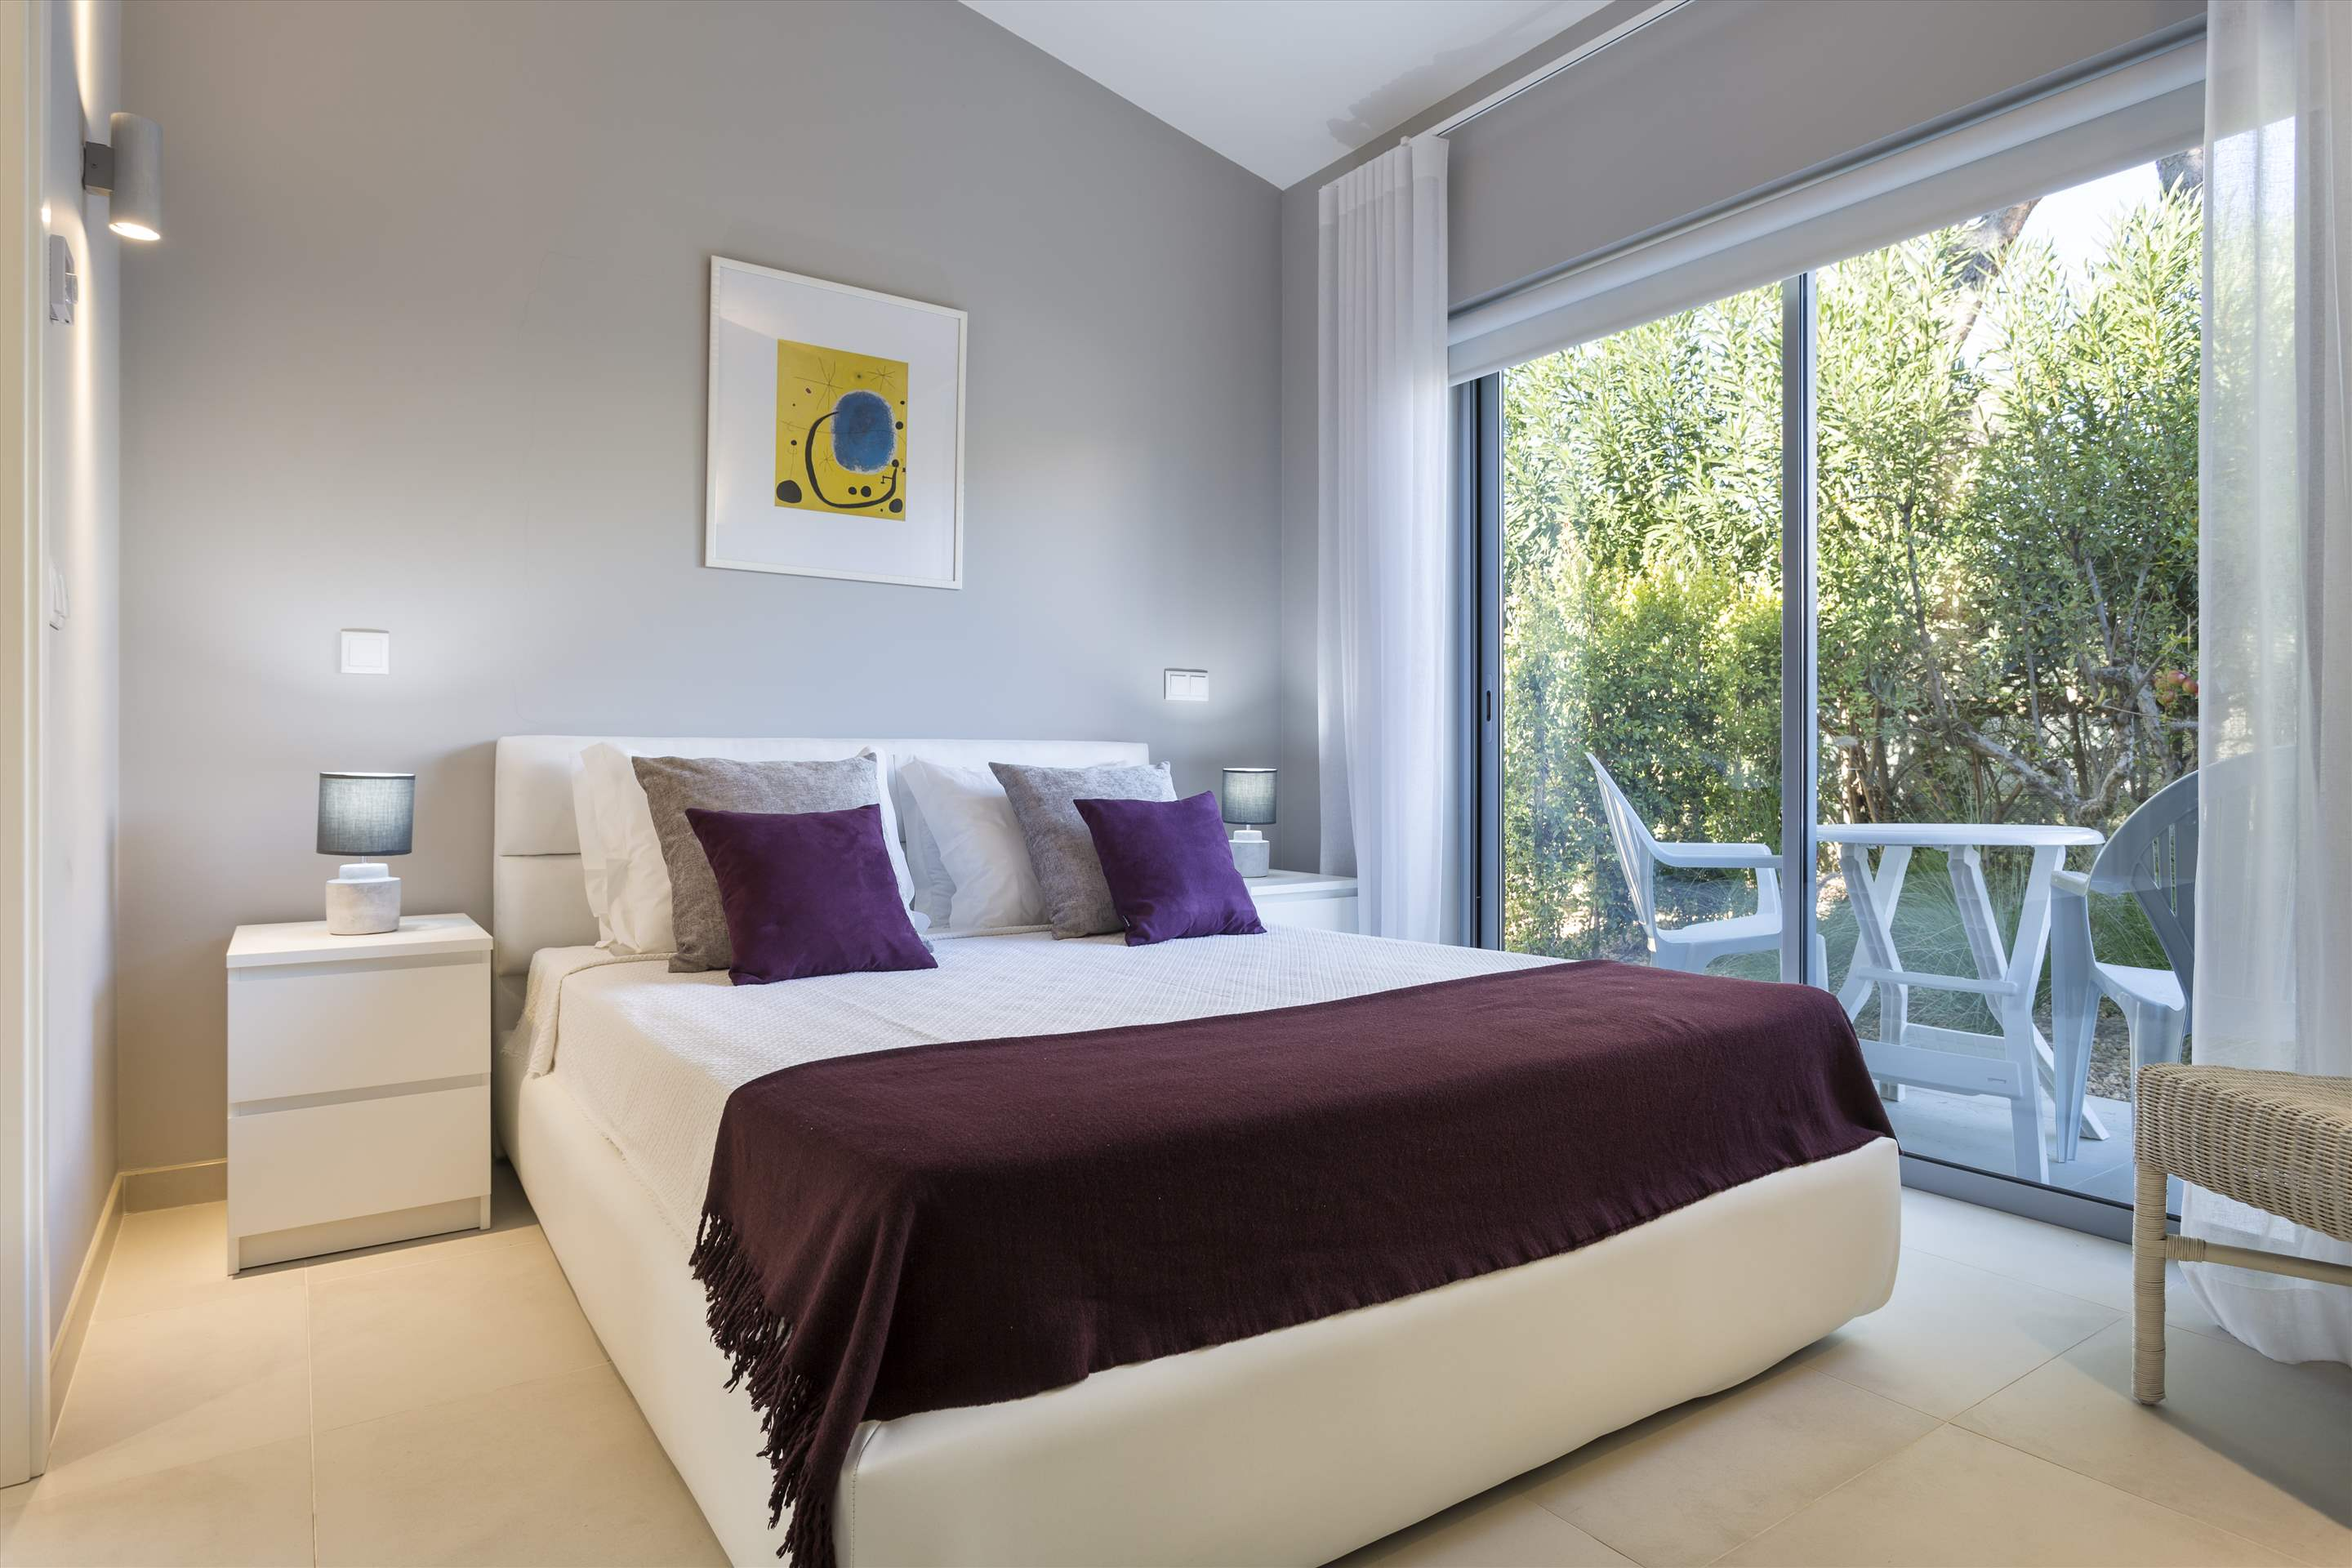 Casa Coral, 4 bedroom villa in Vale do Lobo, Algarve Photo #14